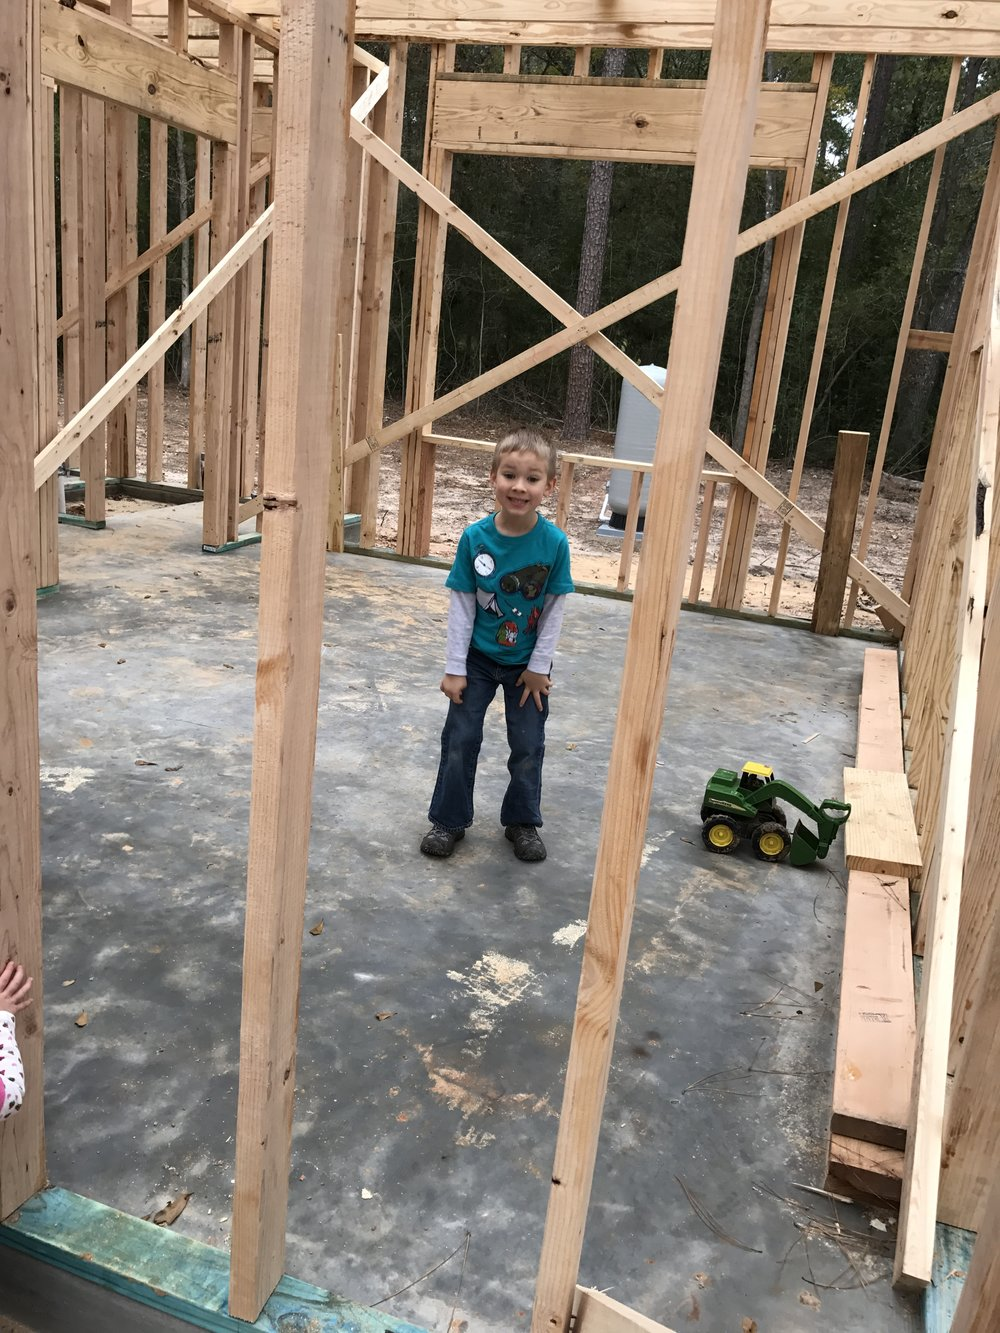 Excited about his new room!